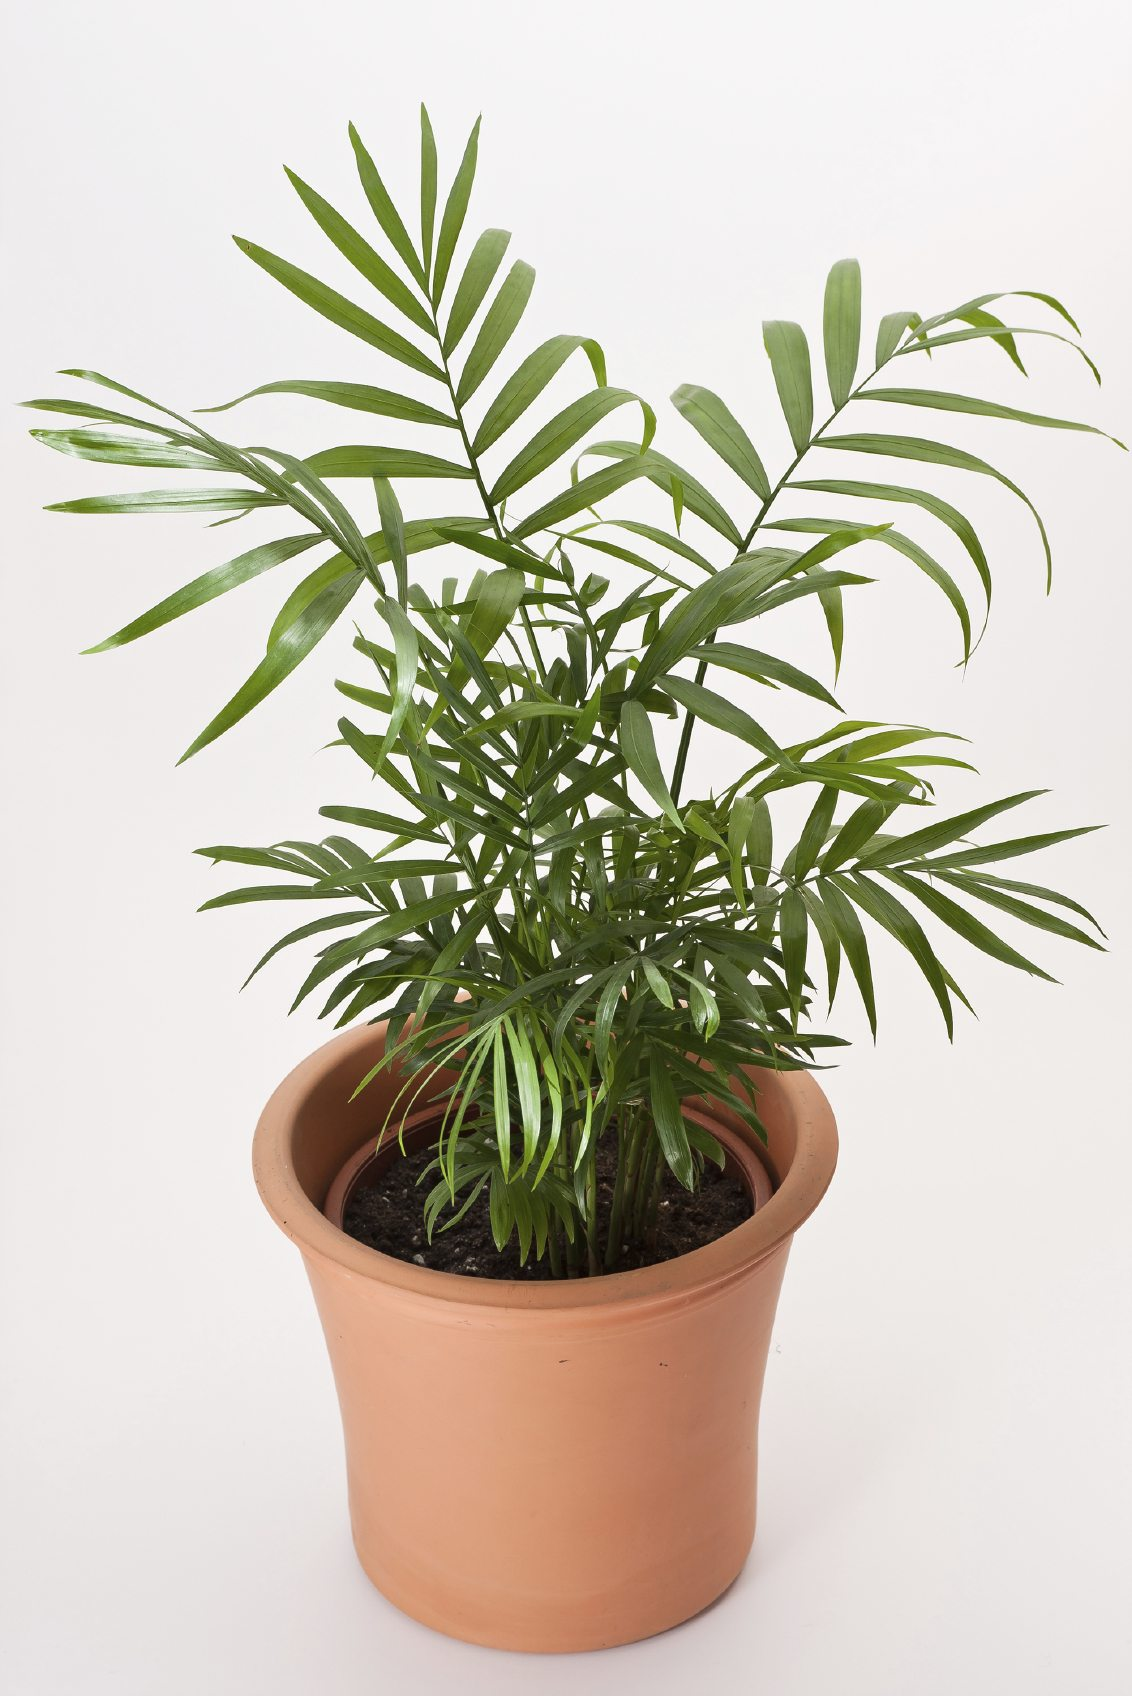 Parlor palm houseplant care caring for indoor parlor for Maintenance of indoor plants